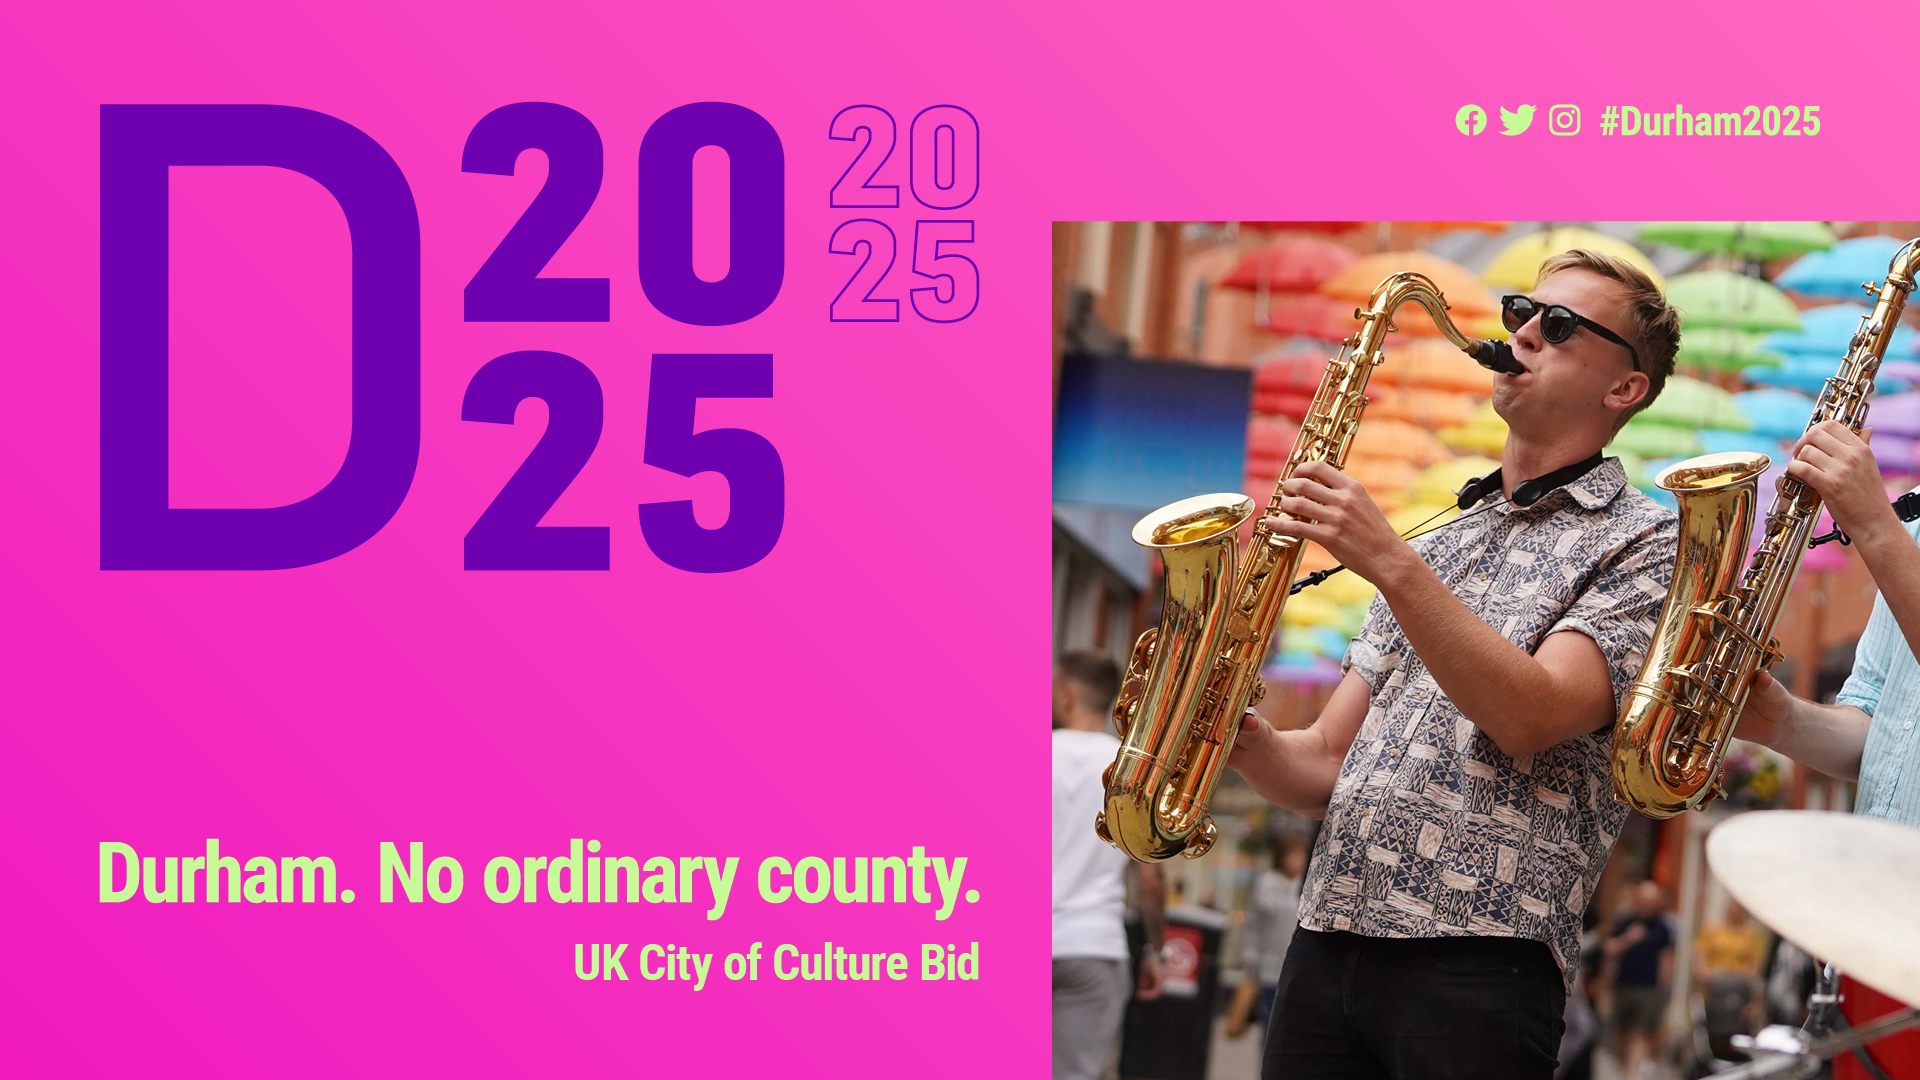 Man playing saxophone with the strapline Durham. No Ordinary County beside him.